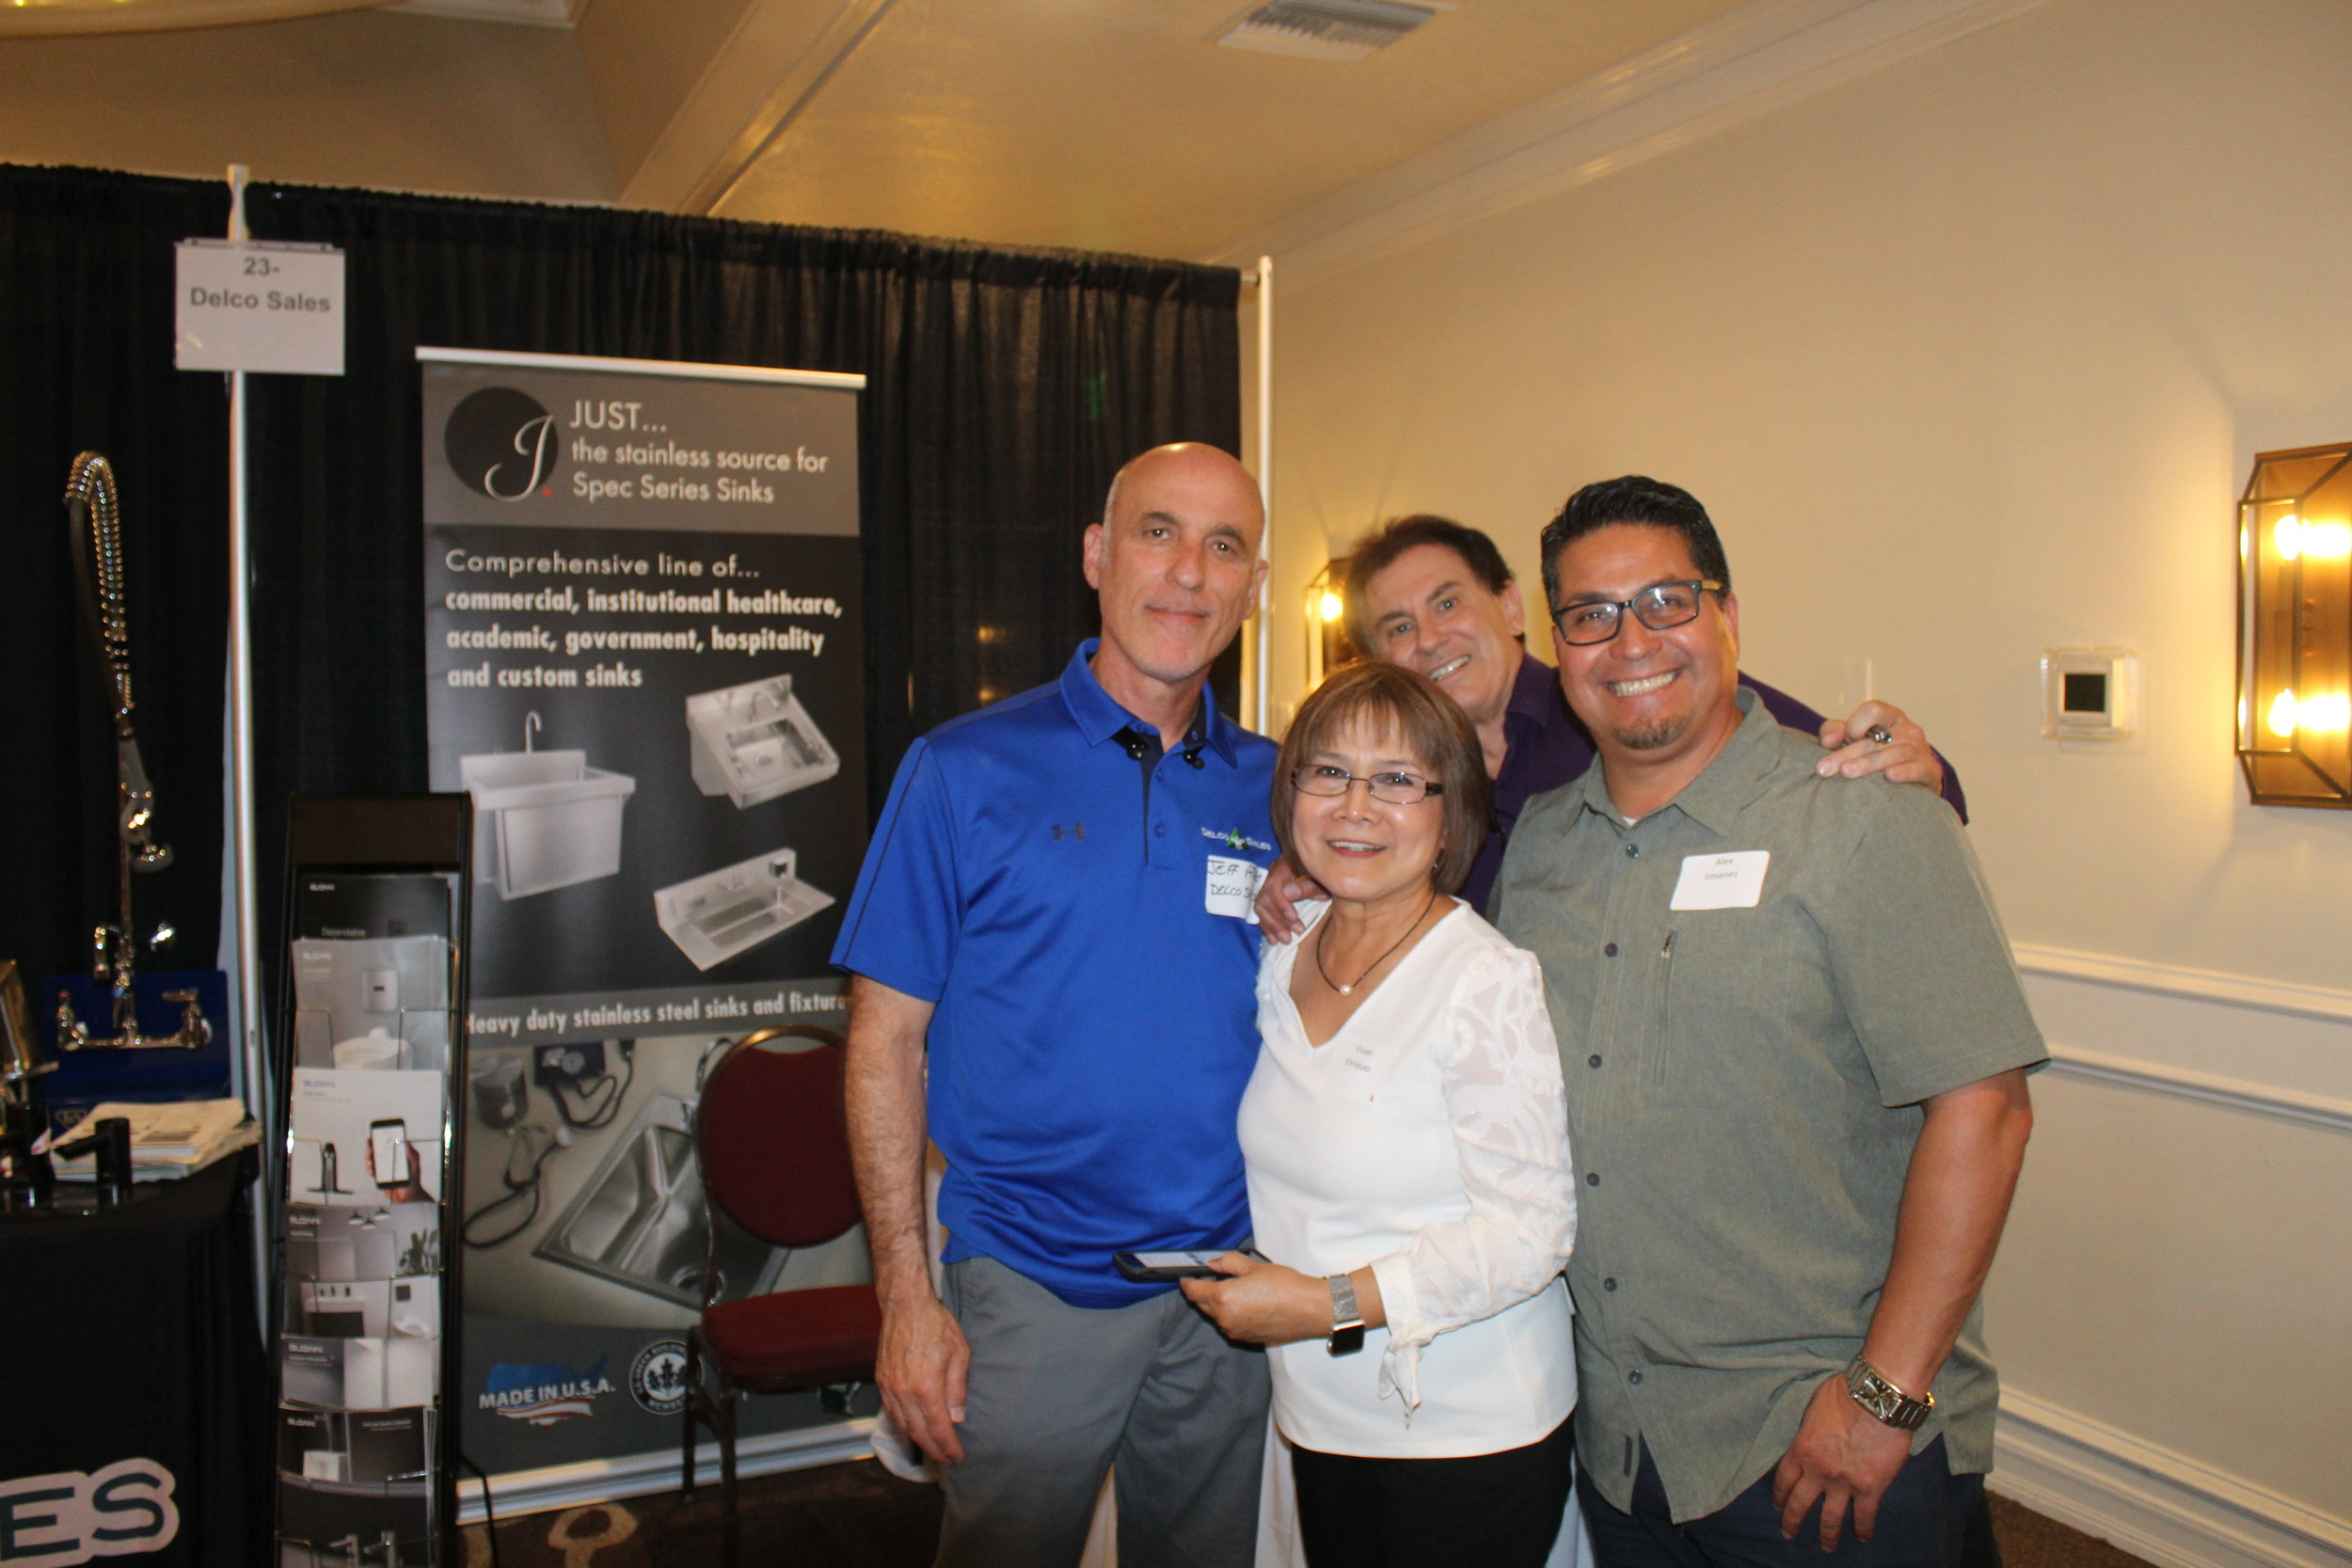 Jeff Atlas, Vivian Enriquez, Just Manufacturing Regional Sales Manager Tod Reveles and Delco Sales Specification Team Member Alex Jimenez